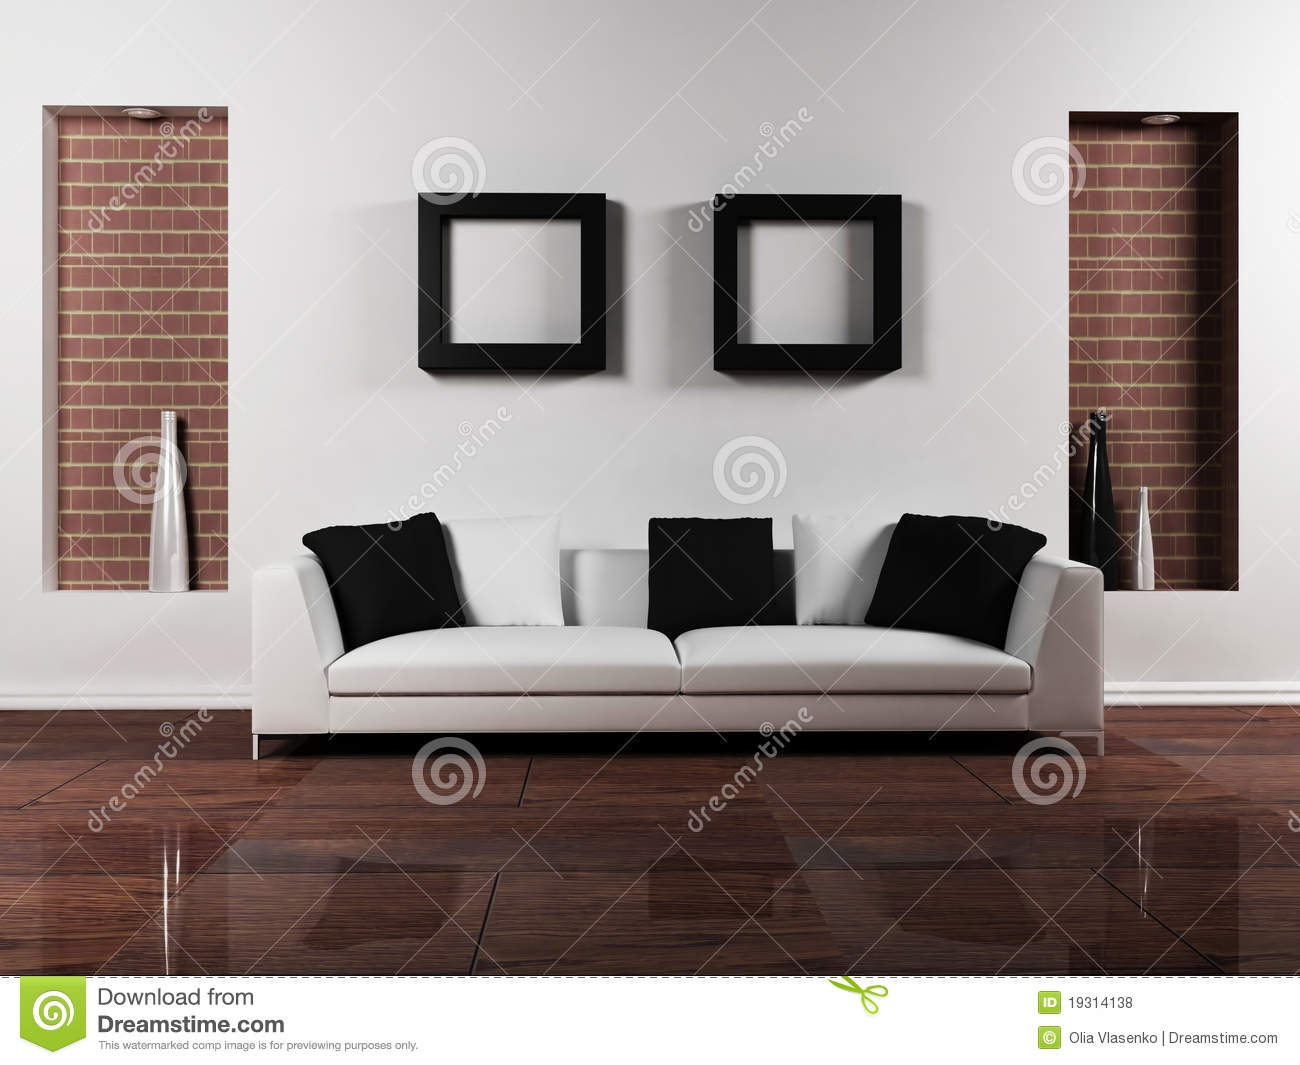 Modern interior design of living room stock illustration for Living room interior design photo gallery